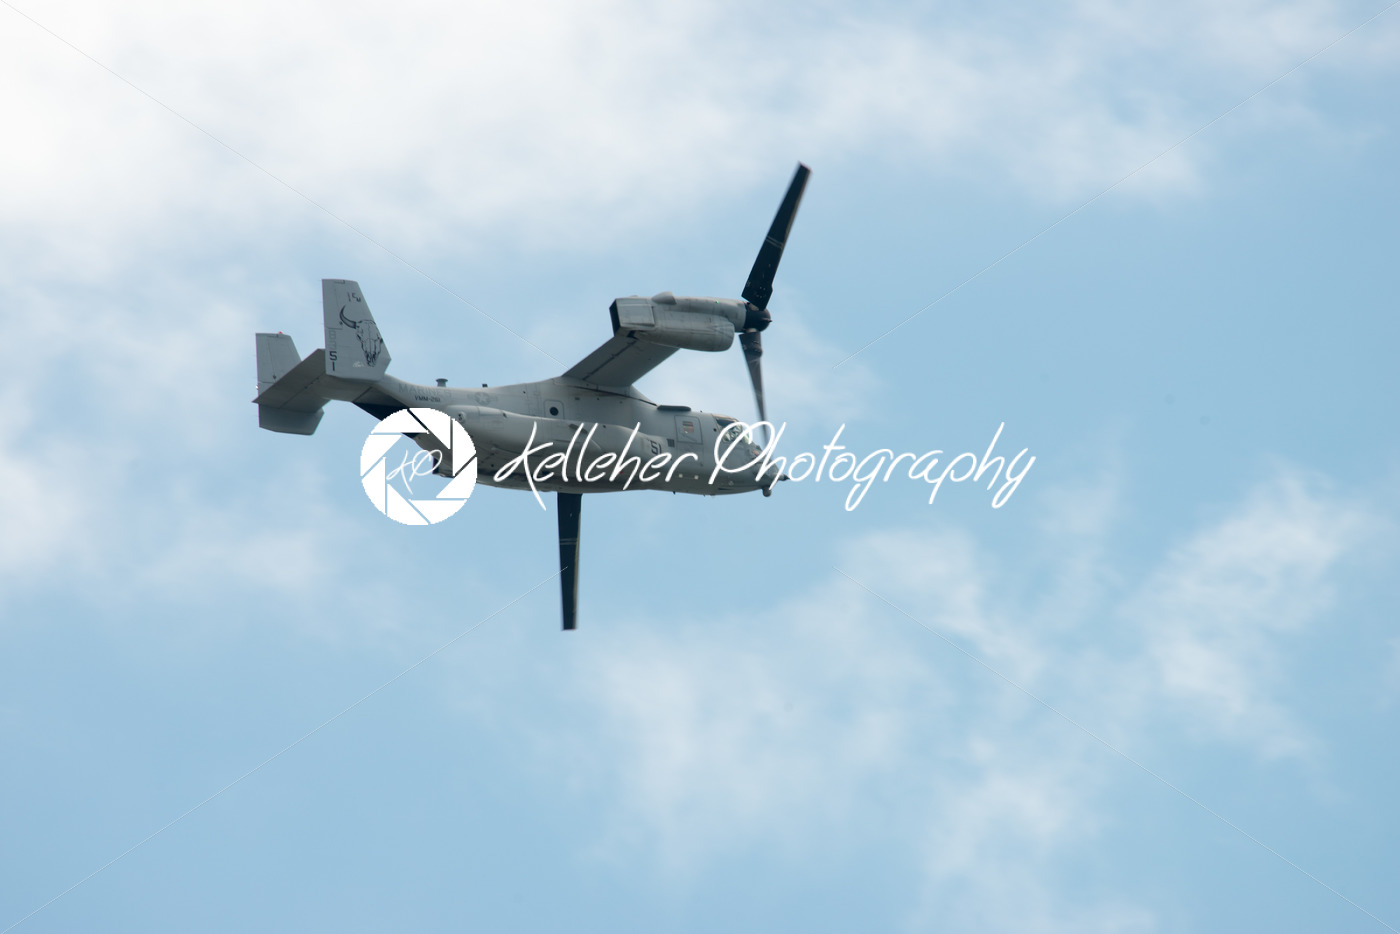 ATLANTIC CITY, NJ – AUGUST 17: Marines V-22 Osprey performing at the Annual Atlantic City Air Show on August 17, 2016 - Kelleher Photography Store